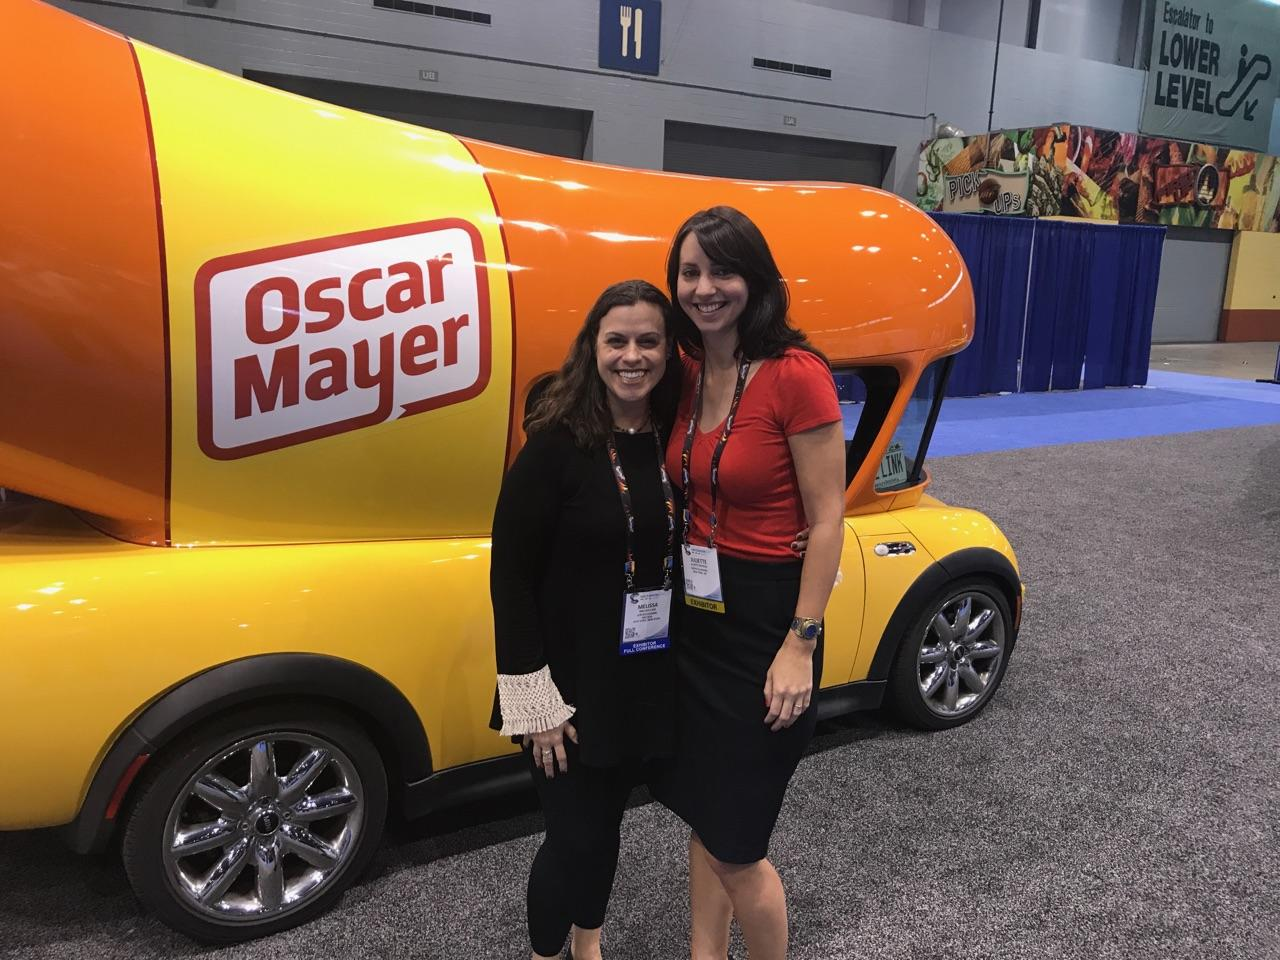 ServiceChannel takes a ride with Oscar Mayer